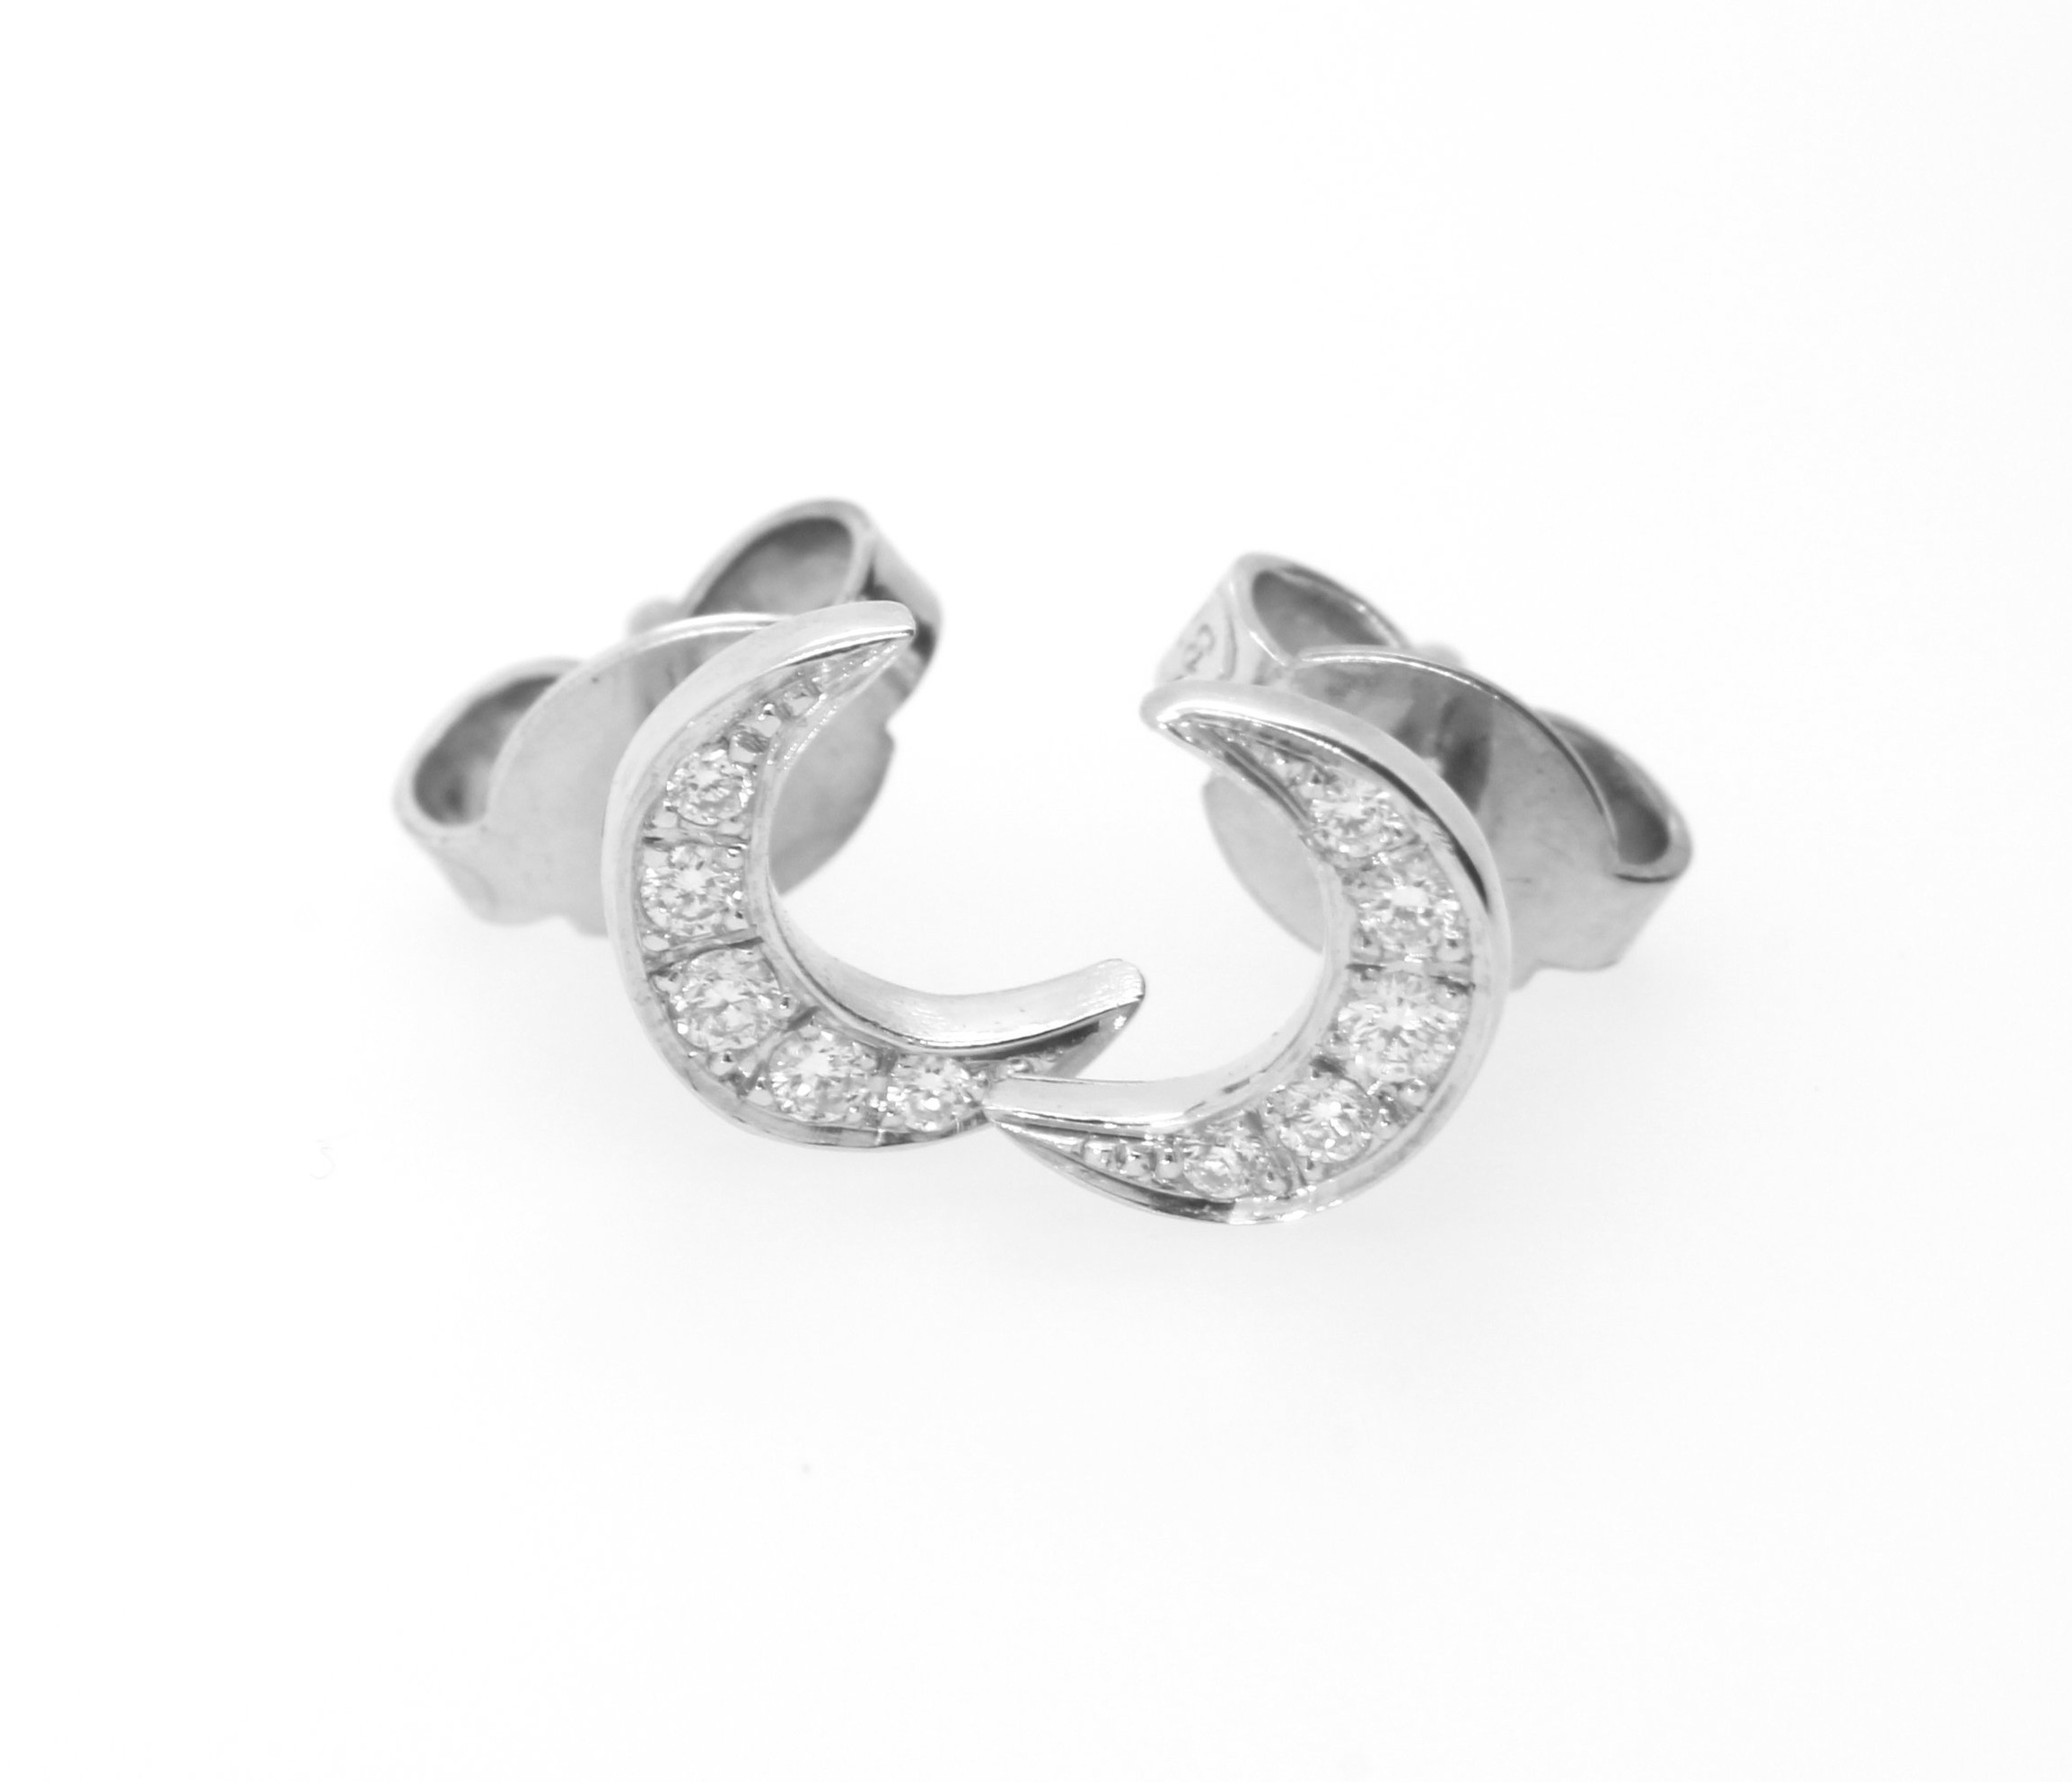 Diamond-set crescent studs in 9 karat white gold